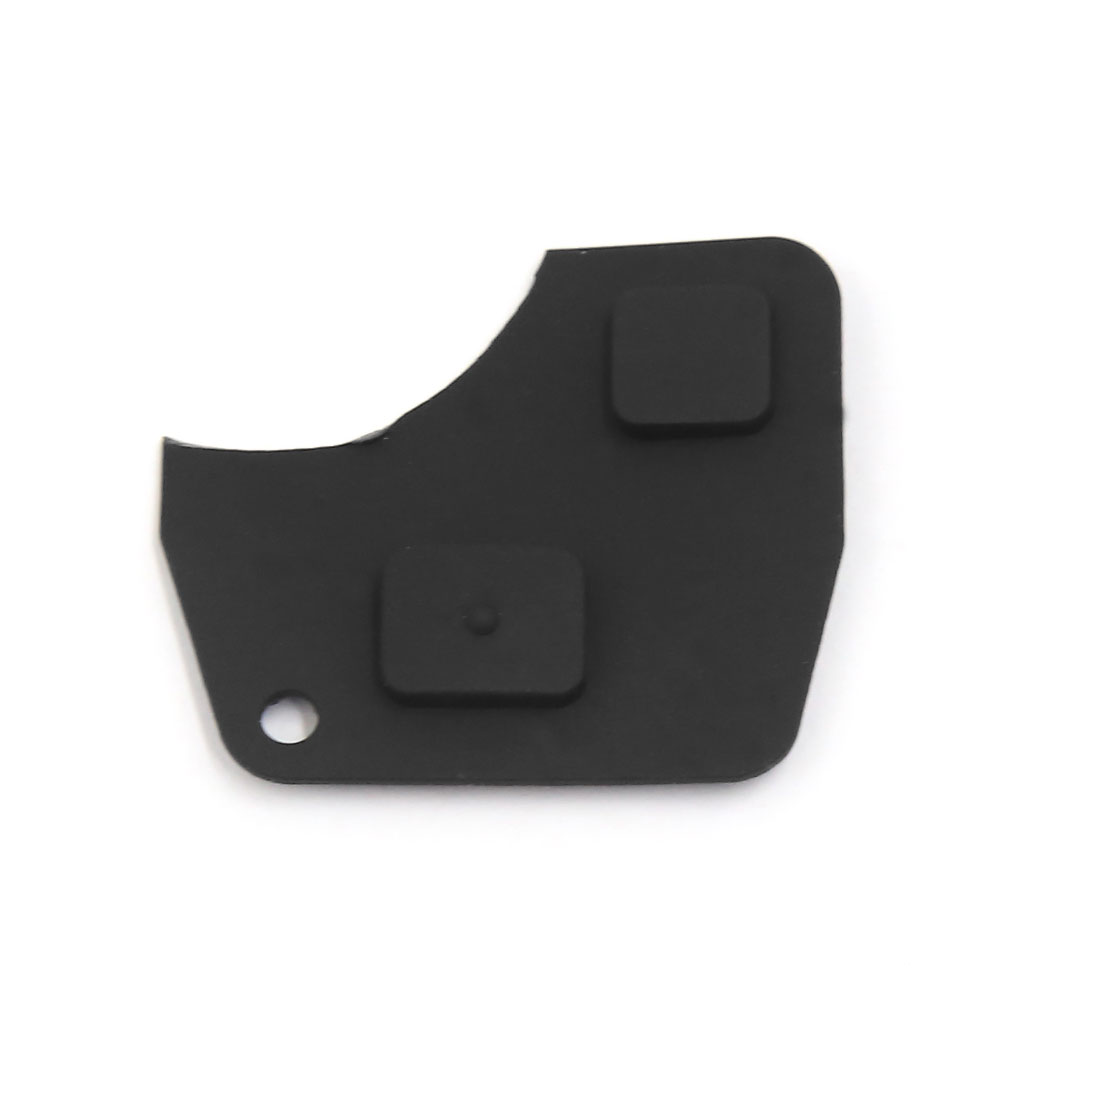 Black 2 Buttons Keyless Entry Remote Key Fob Rubber Button Pad Fit for Toyota